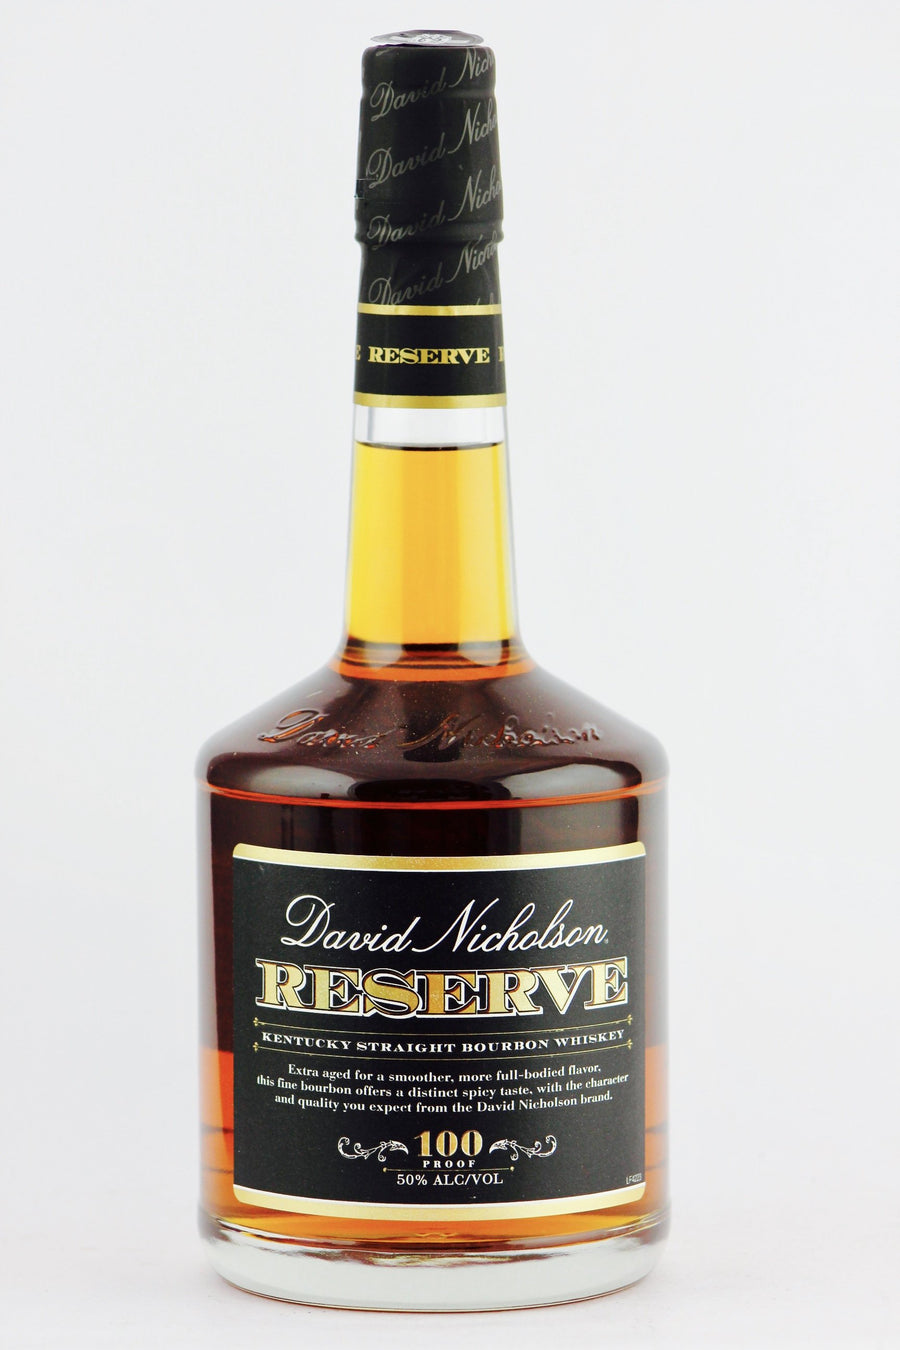 David Nicholson Kentucky Straight Bourbon Whiskey Reserve 750ML